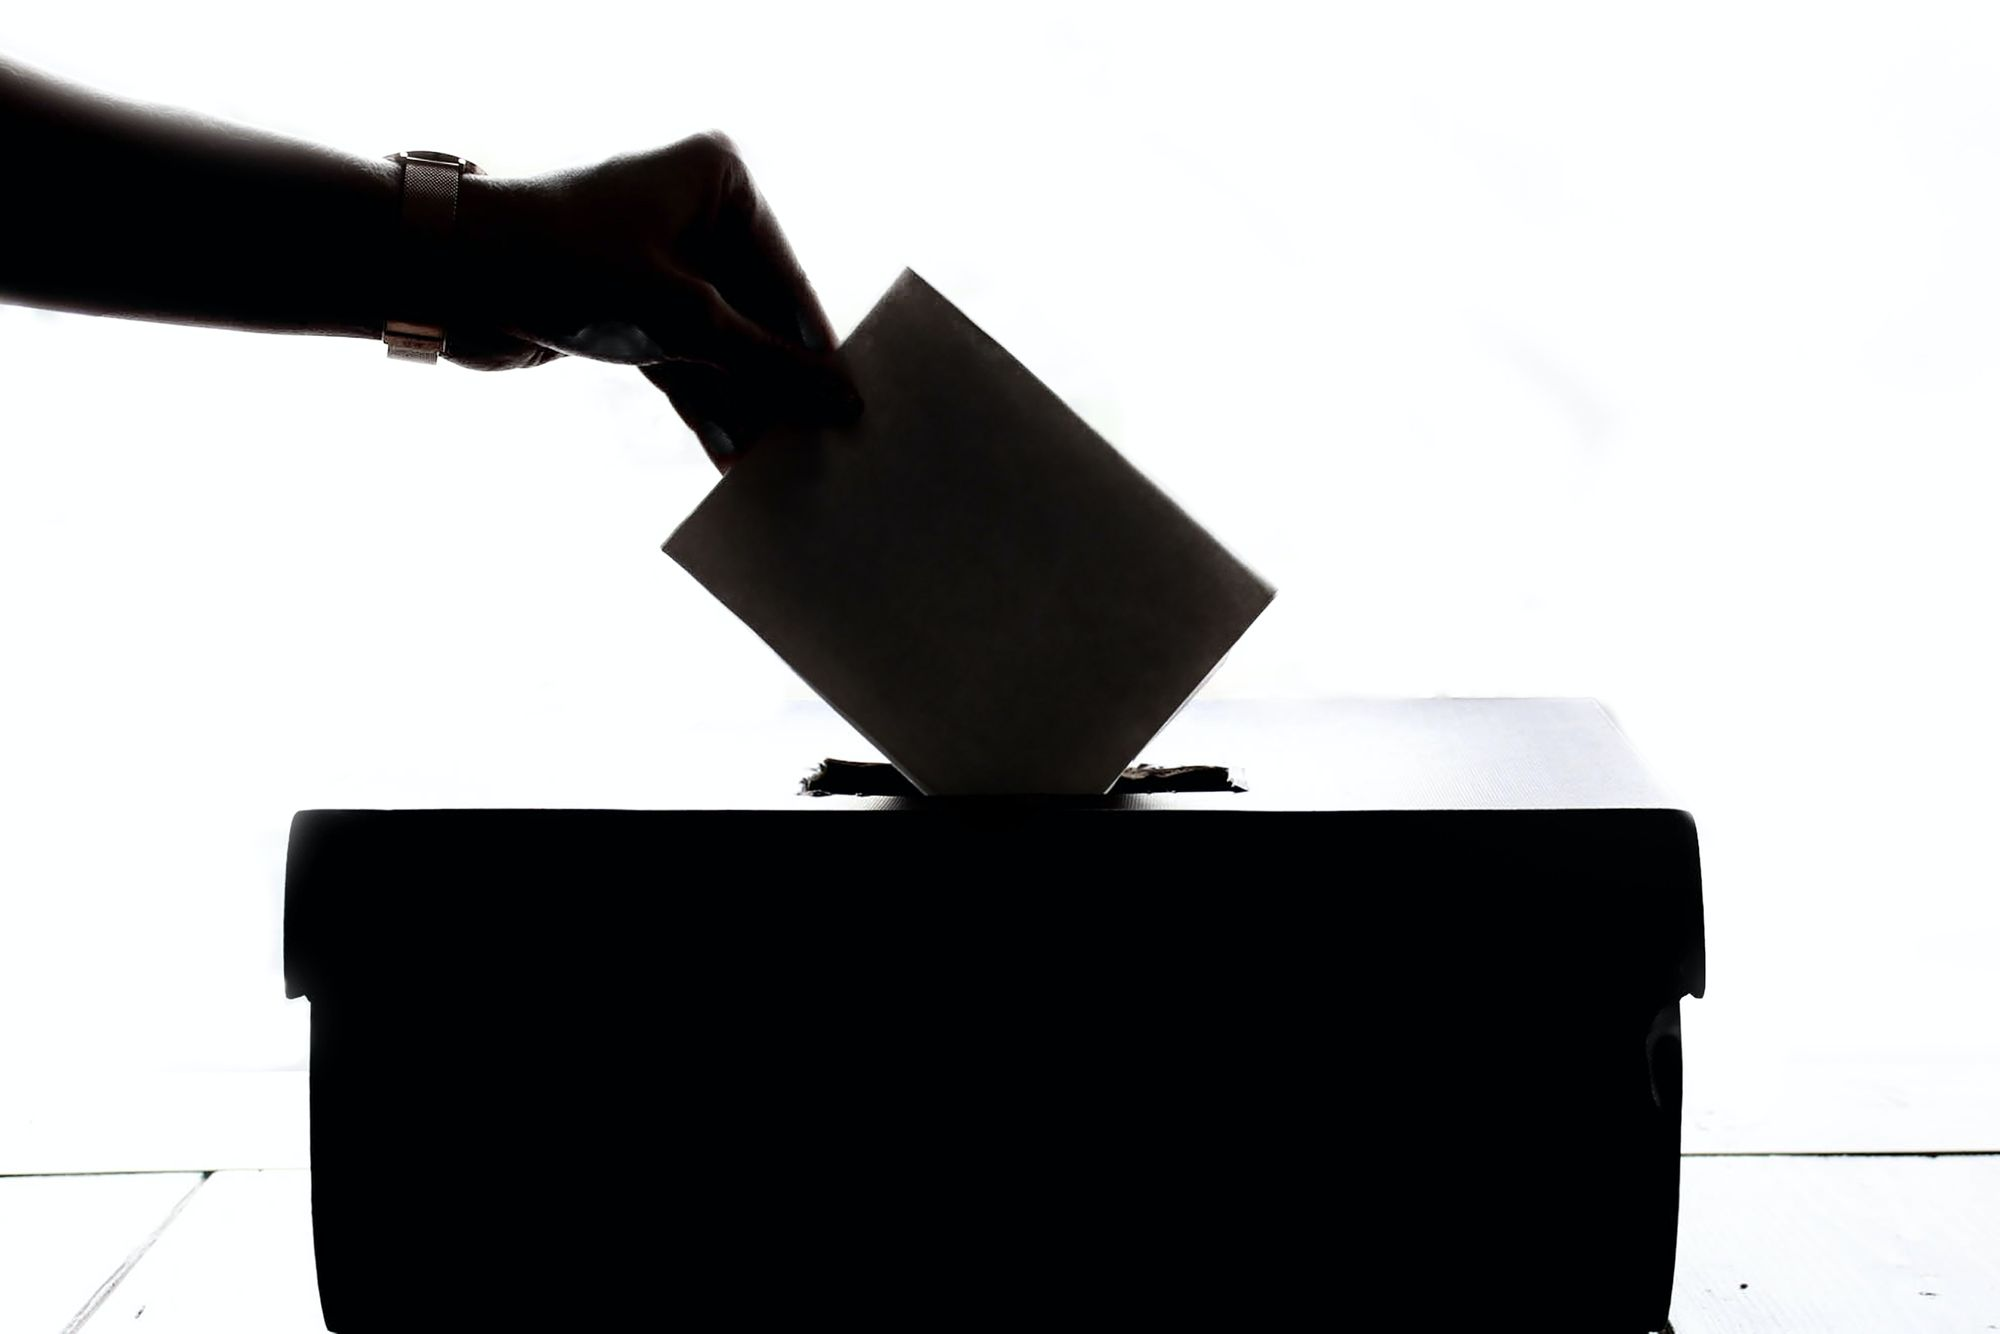 Testosterone and election results